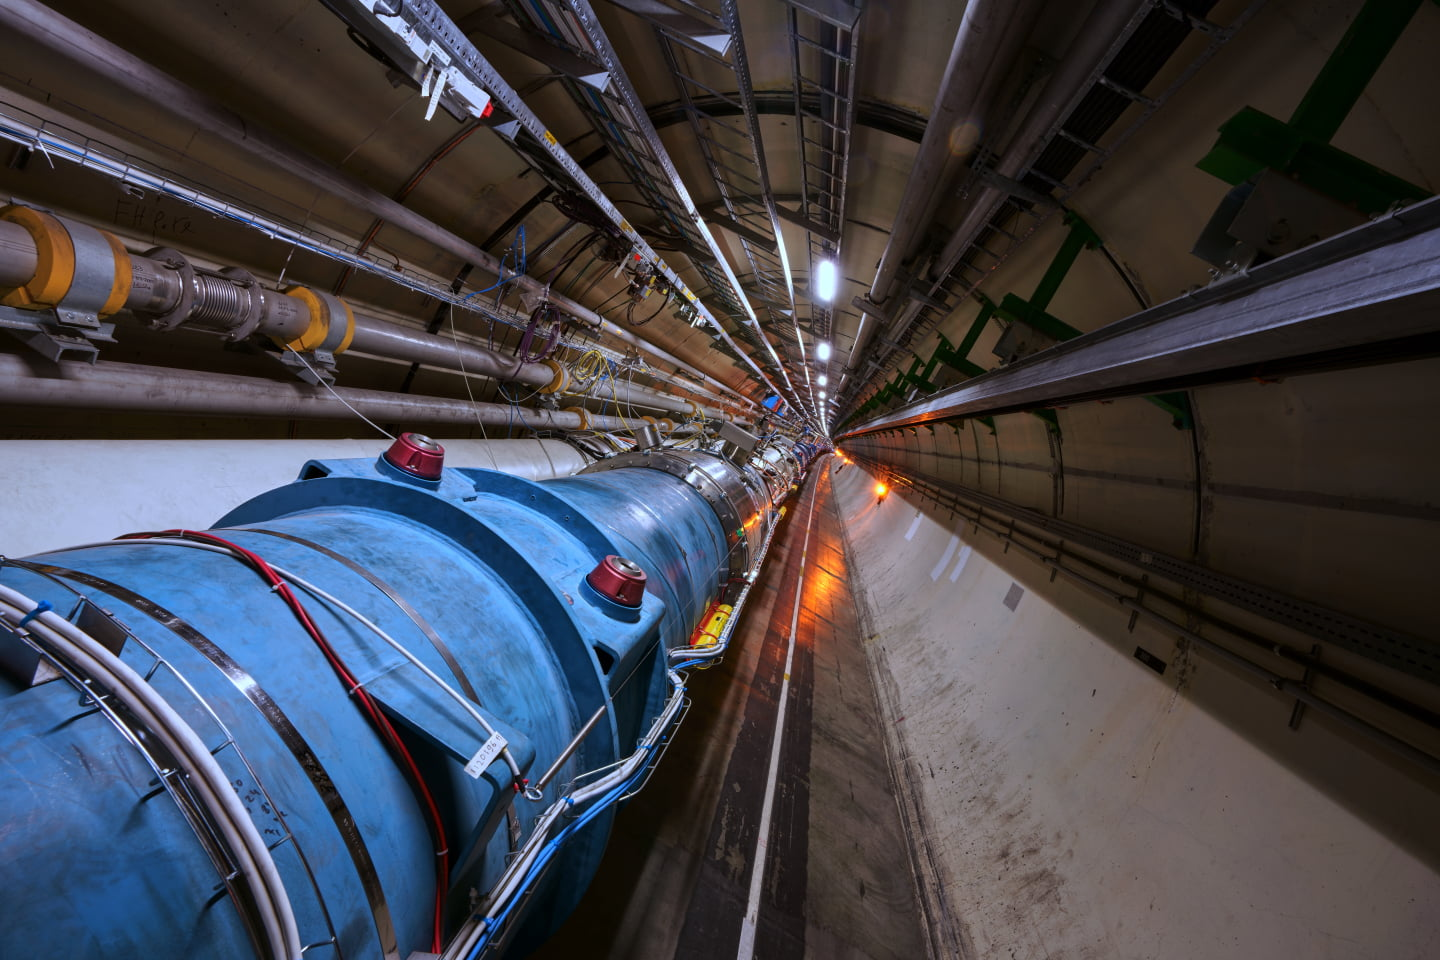 LHC - Large Hadron Collider for discovering God Particle